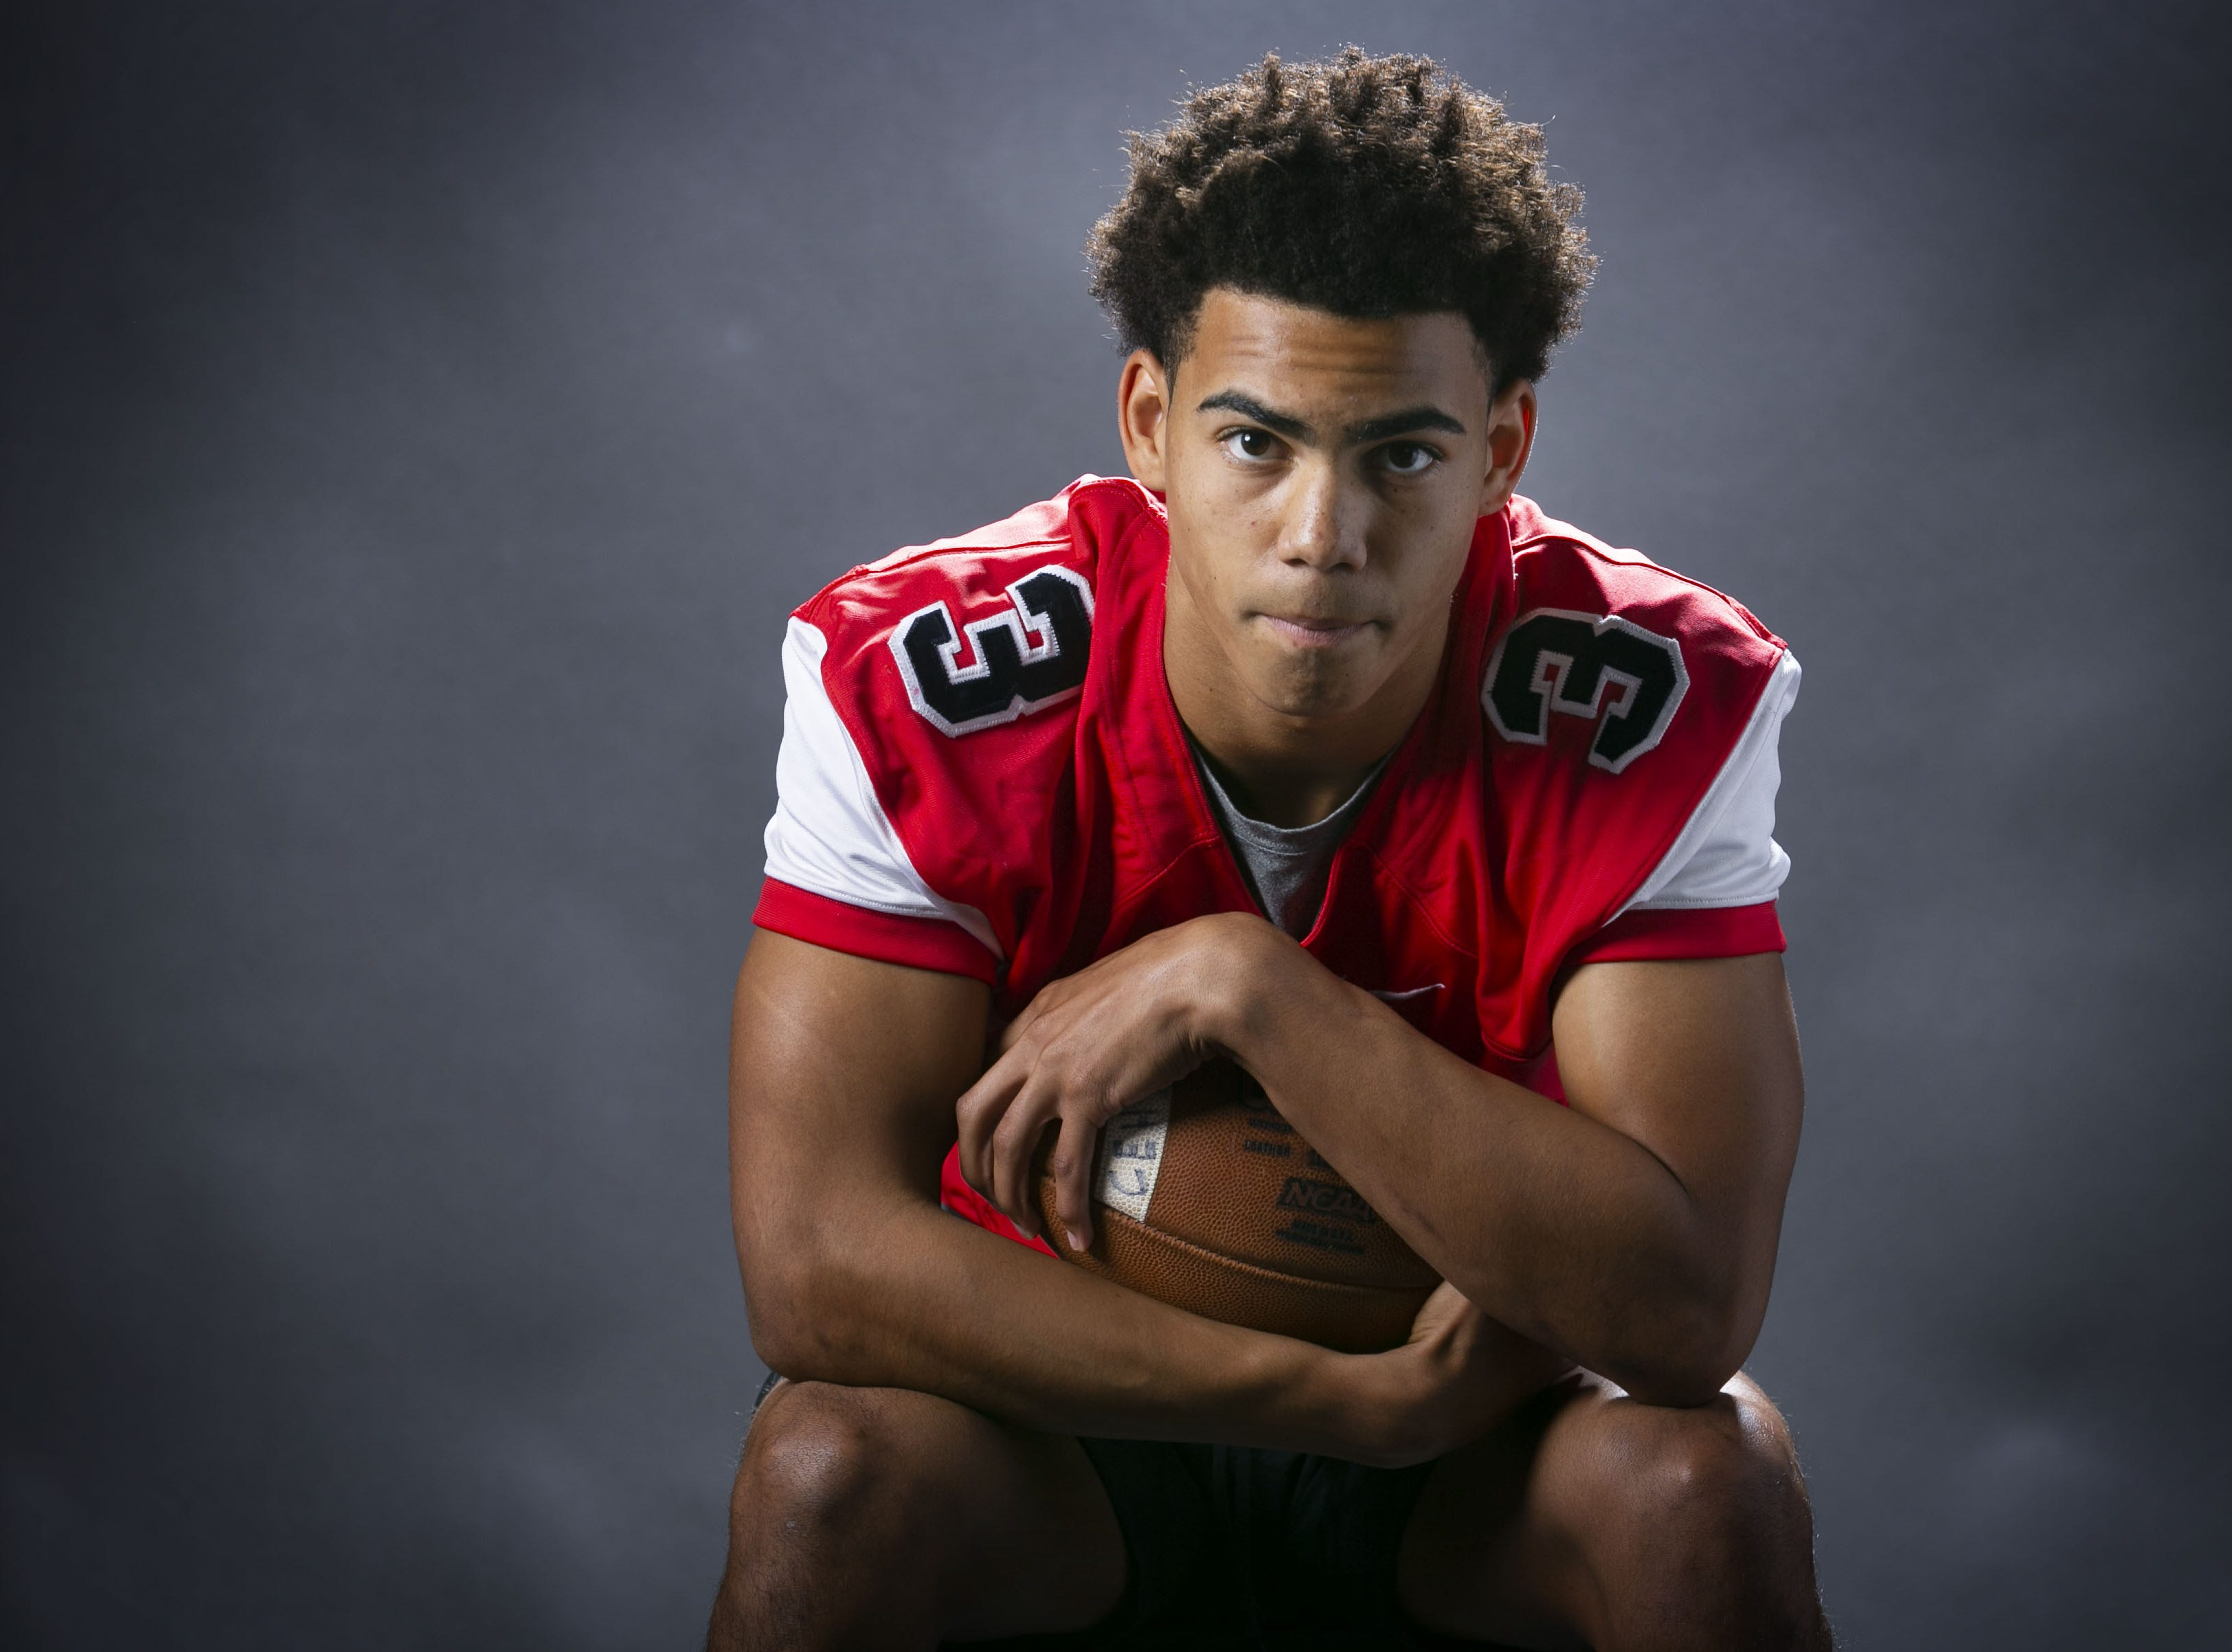 Jaydin Young, a running back and safety with Centennial High is a finalist for the azcentral Sports Awards high school football Player of the Year.